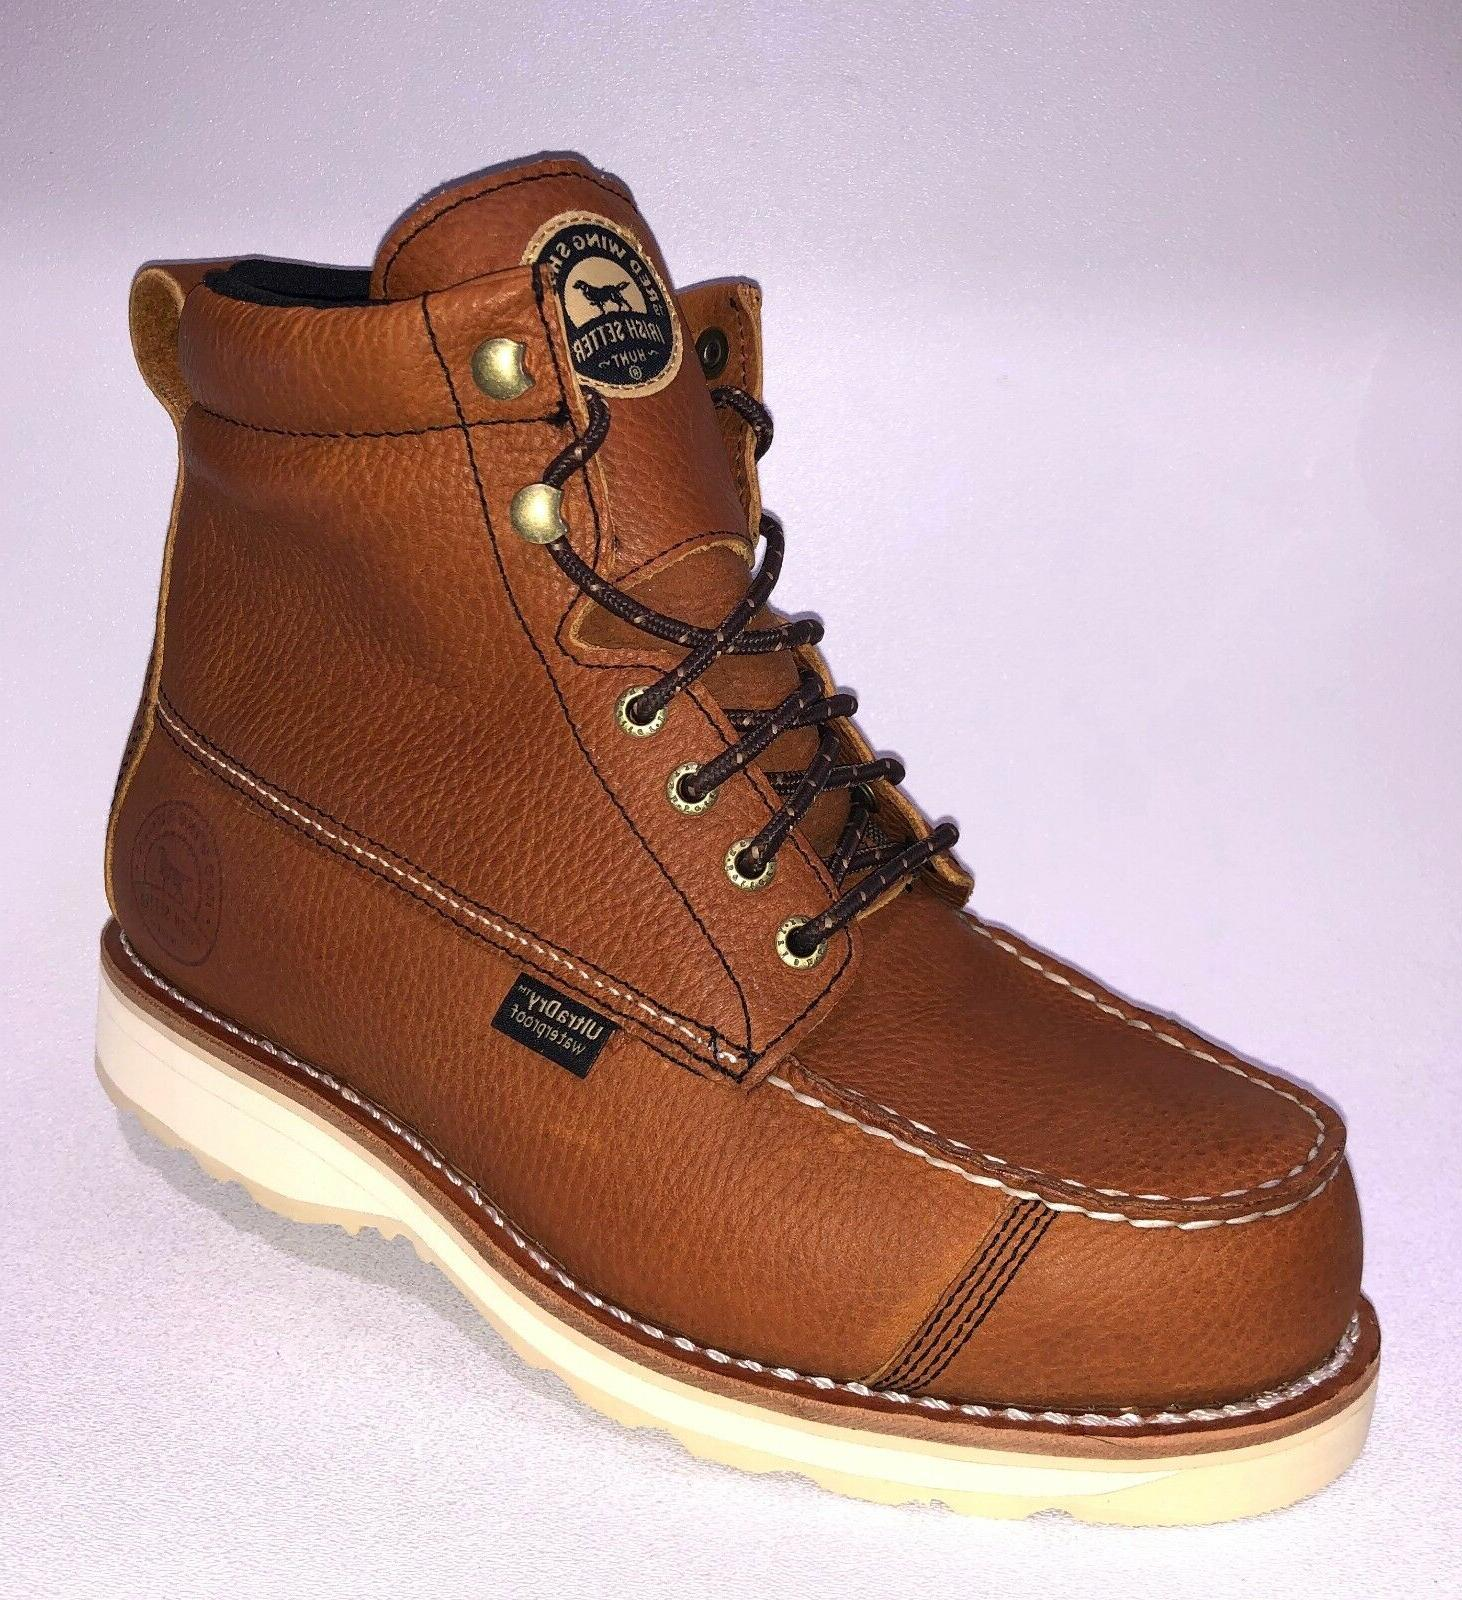 wingshooter 838 brown waterproof leather lace up